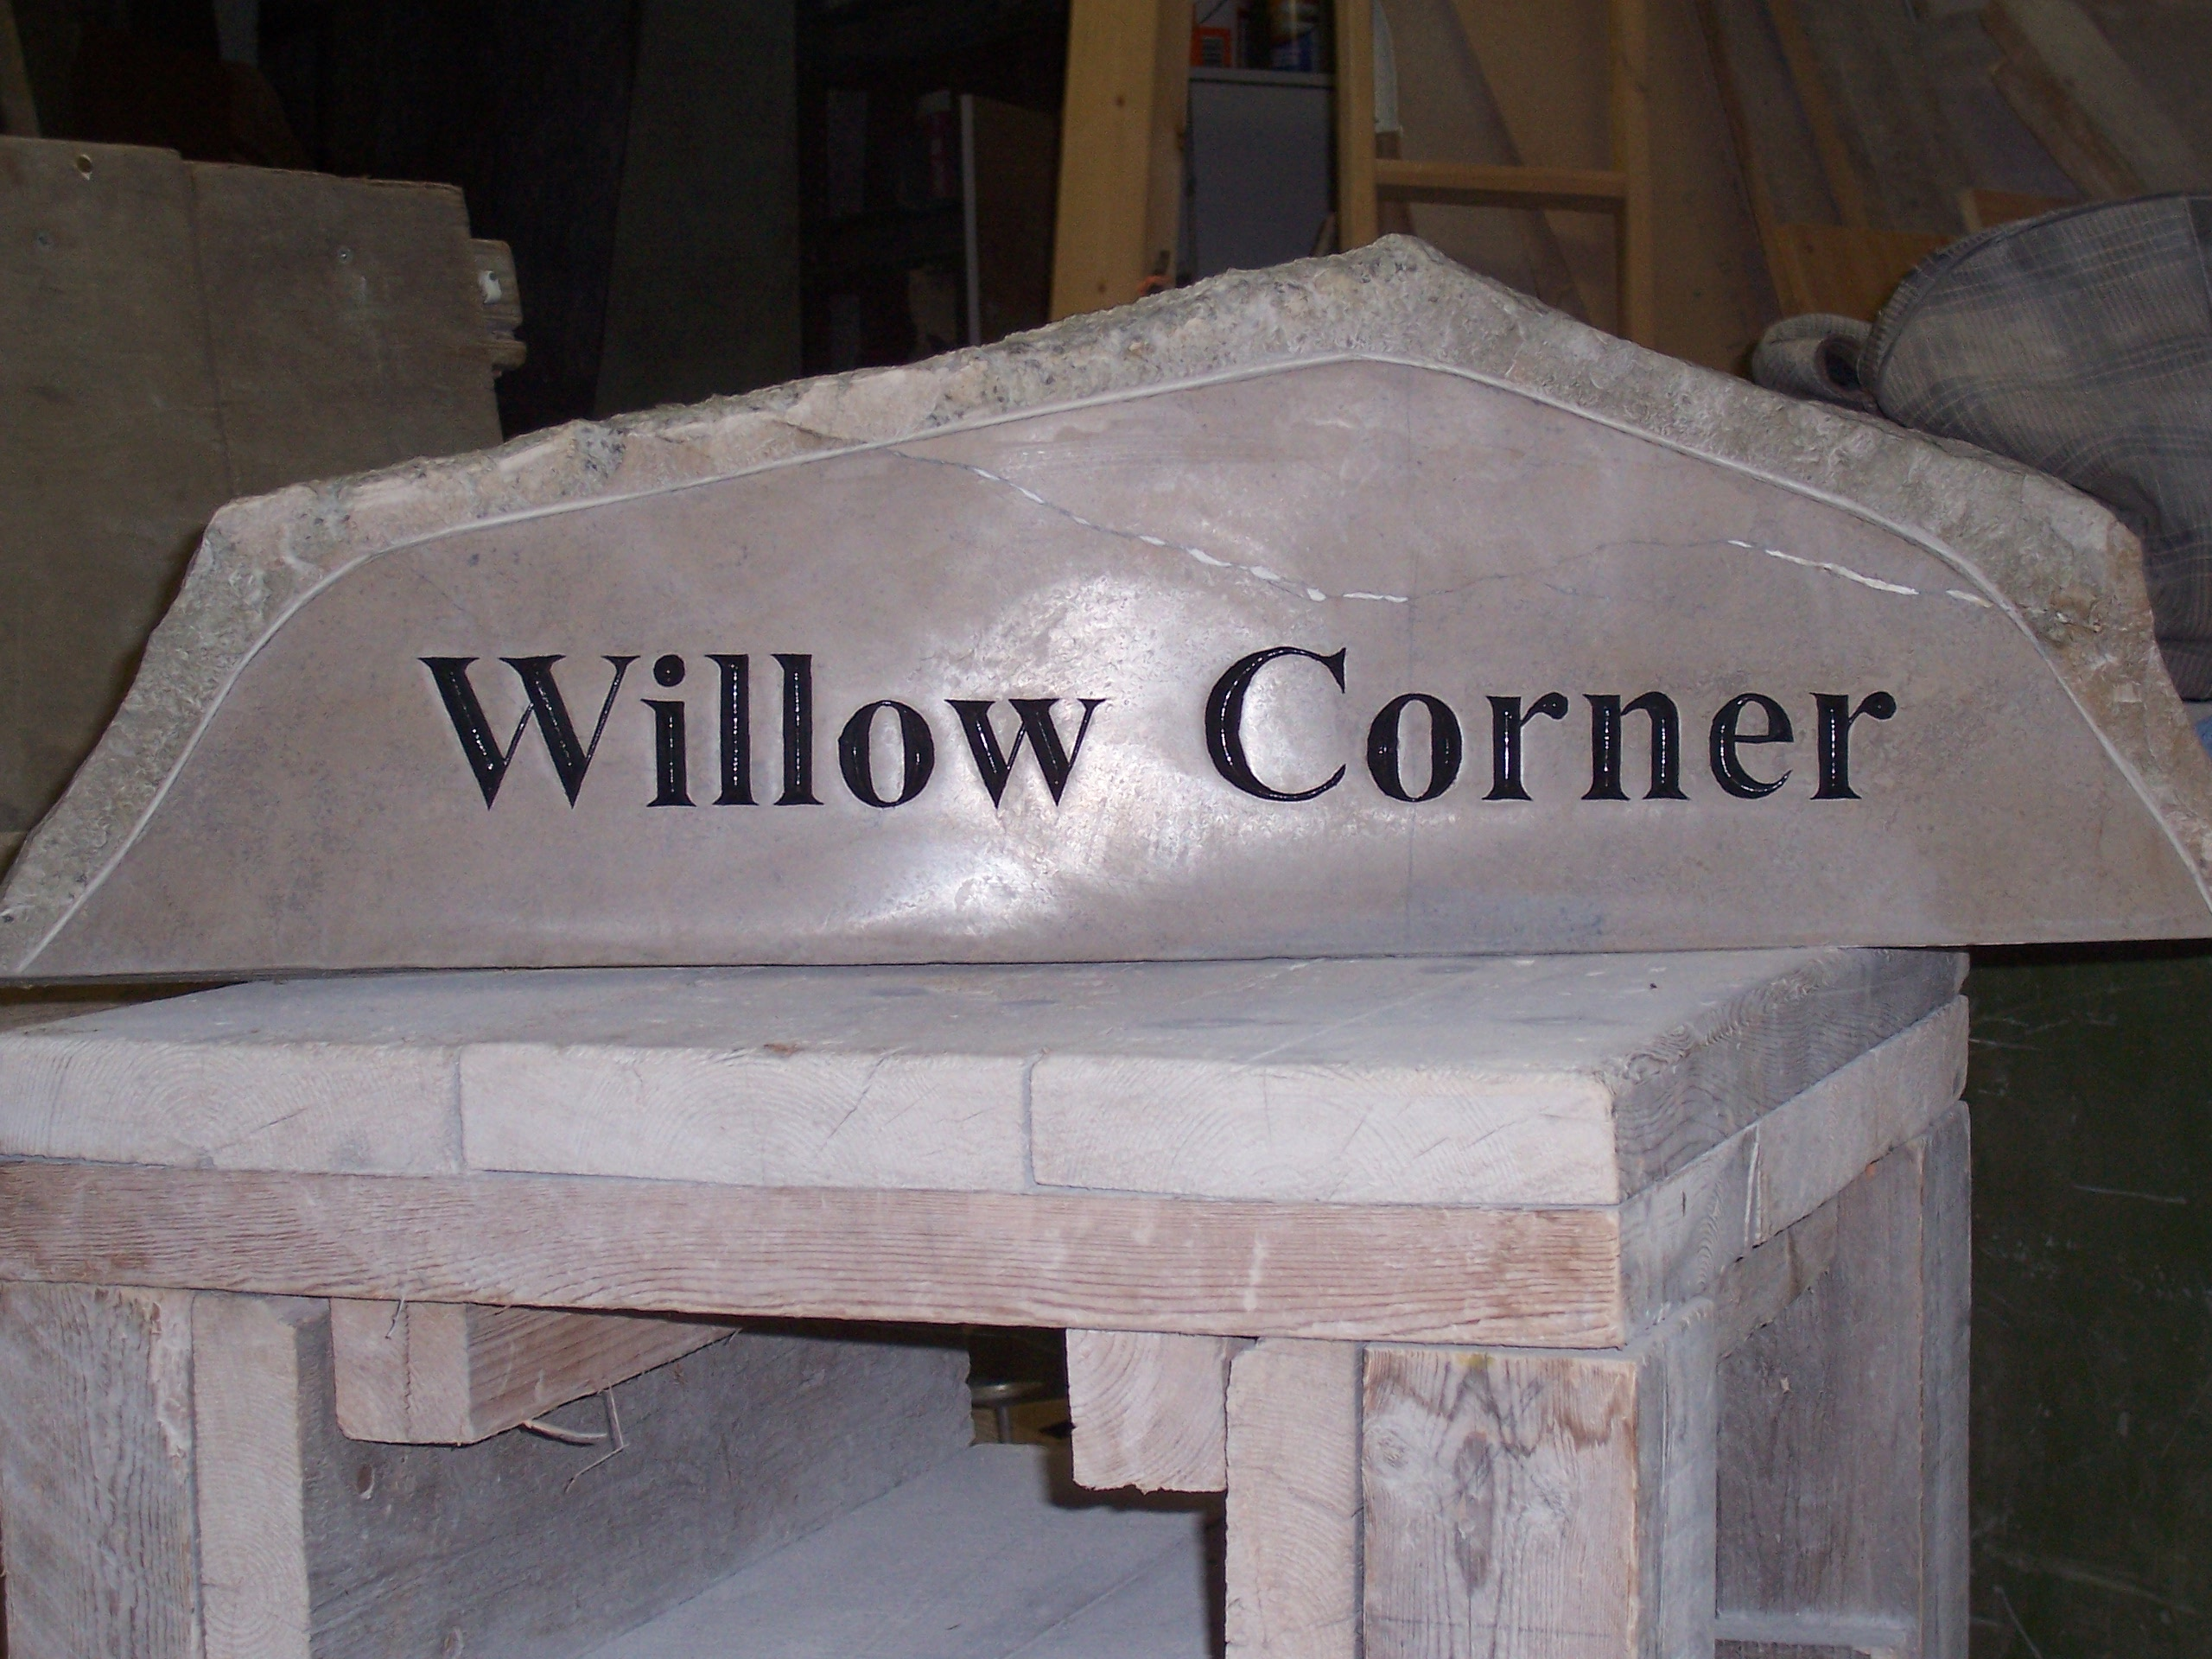 'Willow Corner' - carved sign